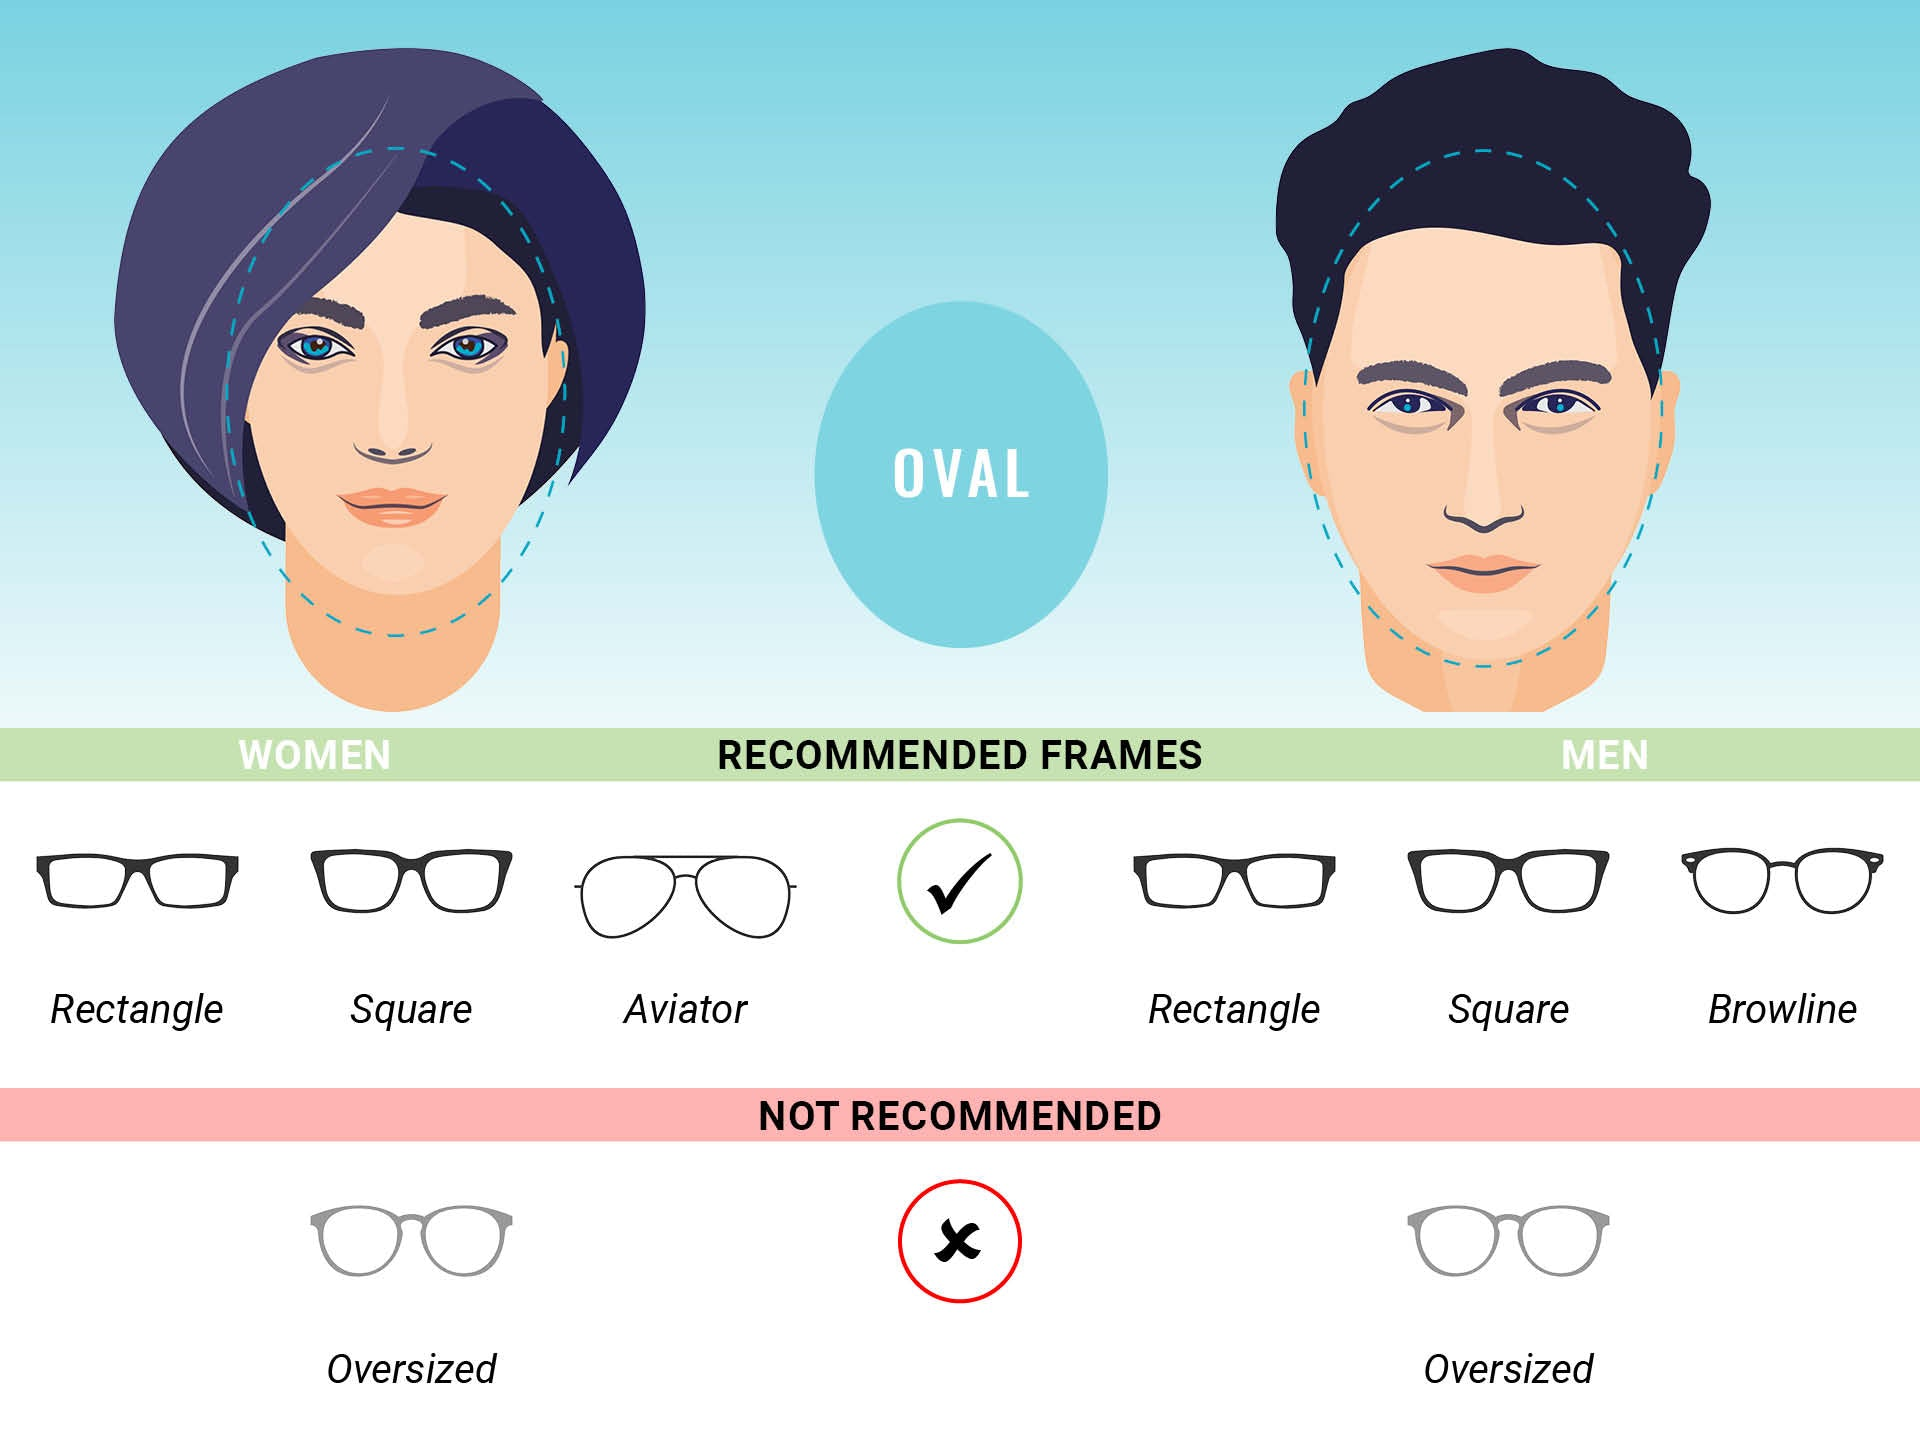 Eyeglass frame recommendations for oval face shapes for men and women